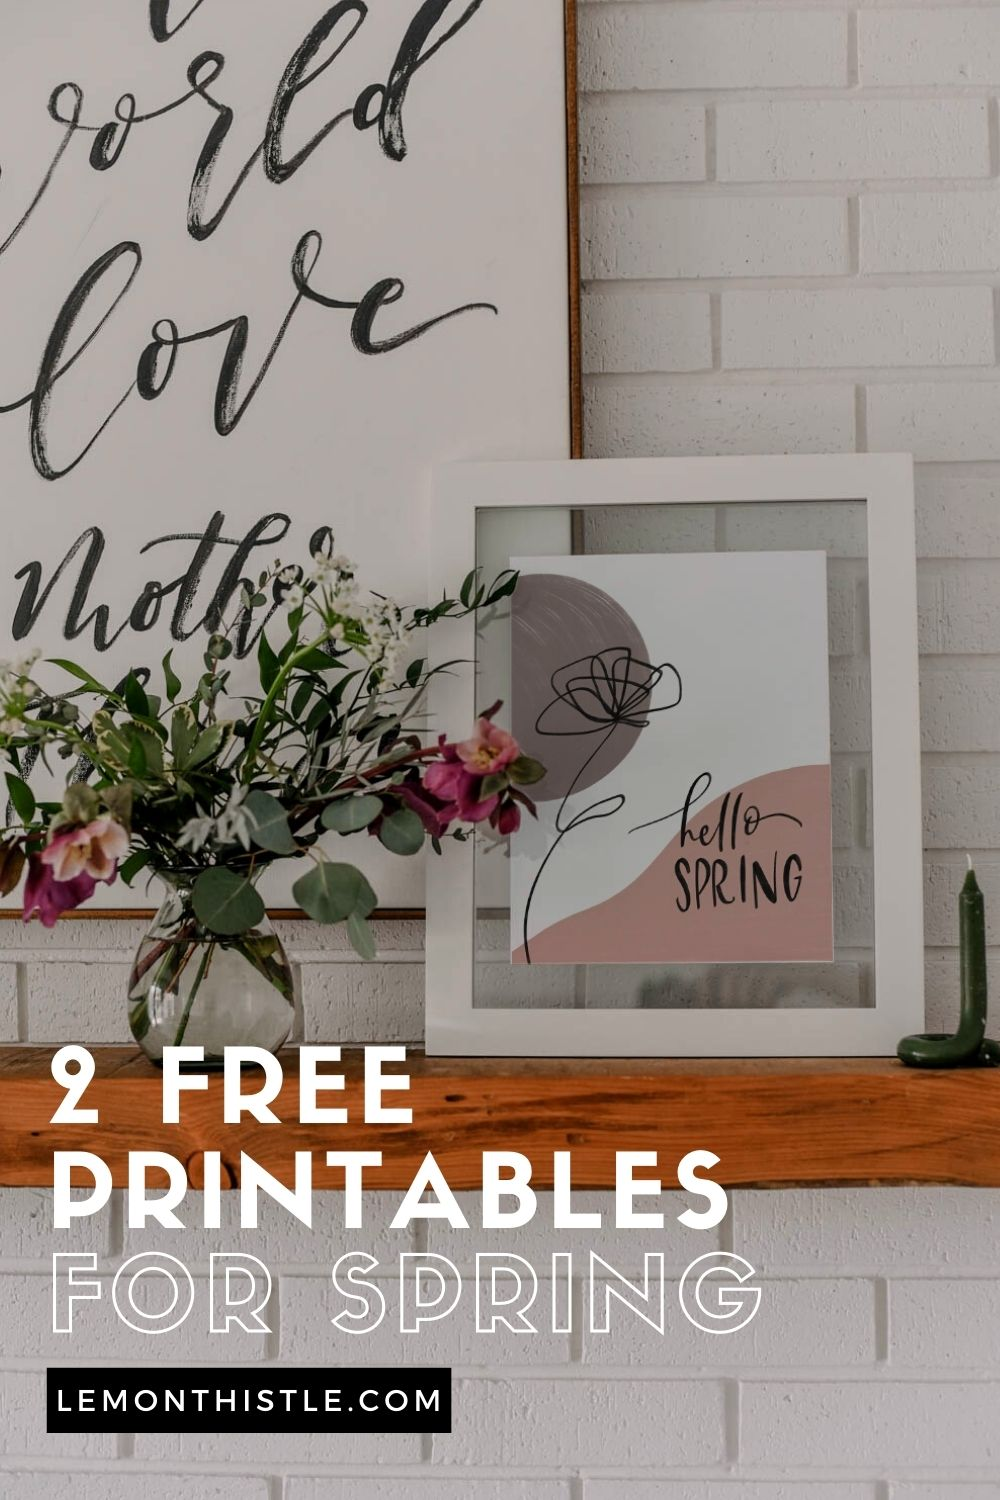 framed 'hello sping' art on mantel with text overlay '2 free printables for spring'